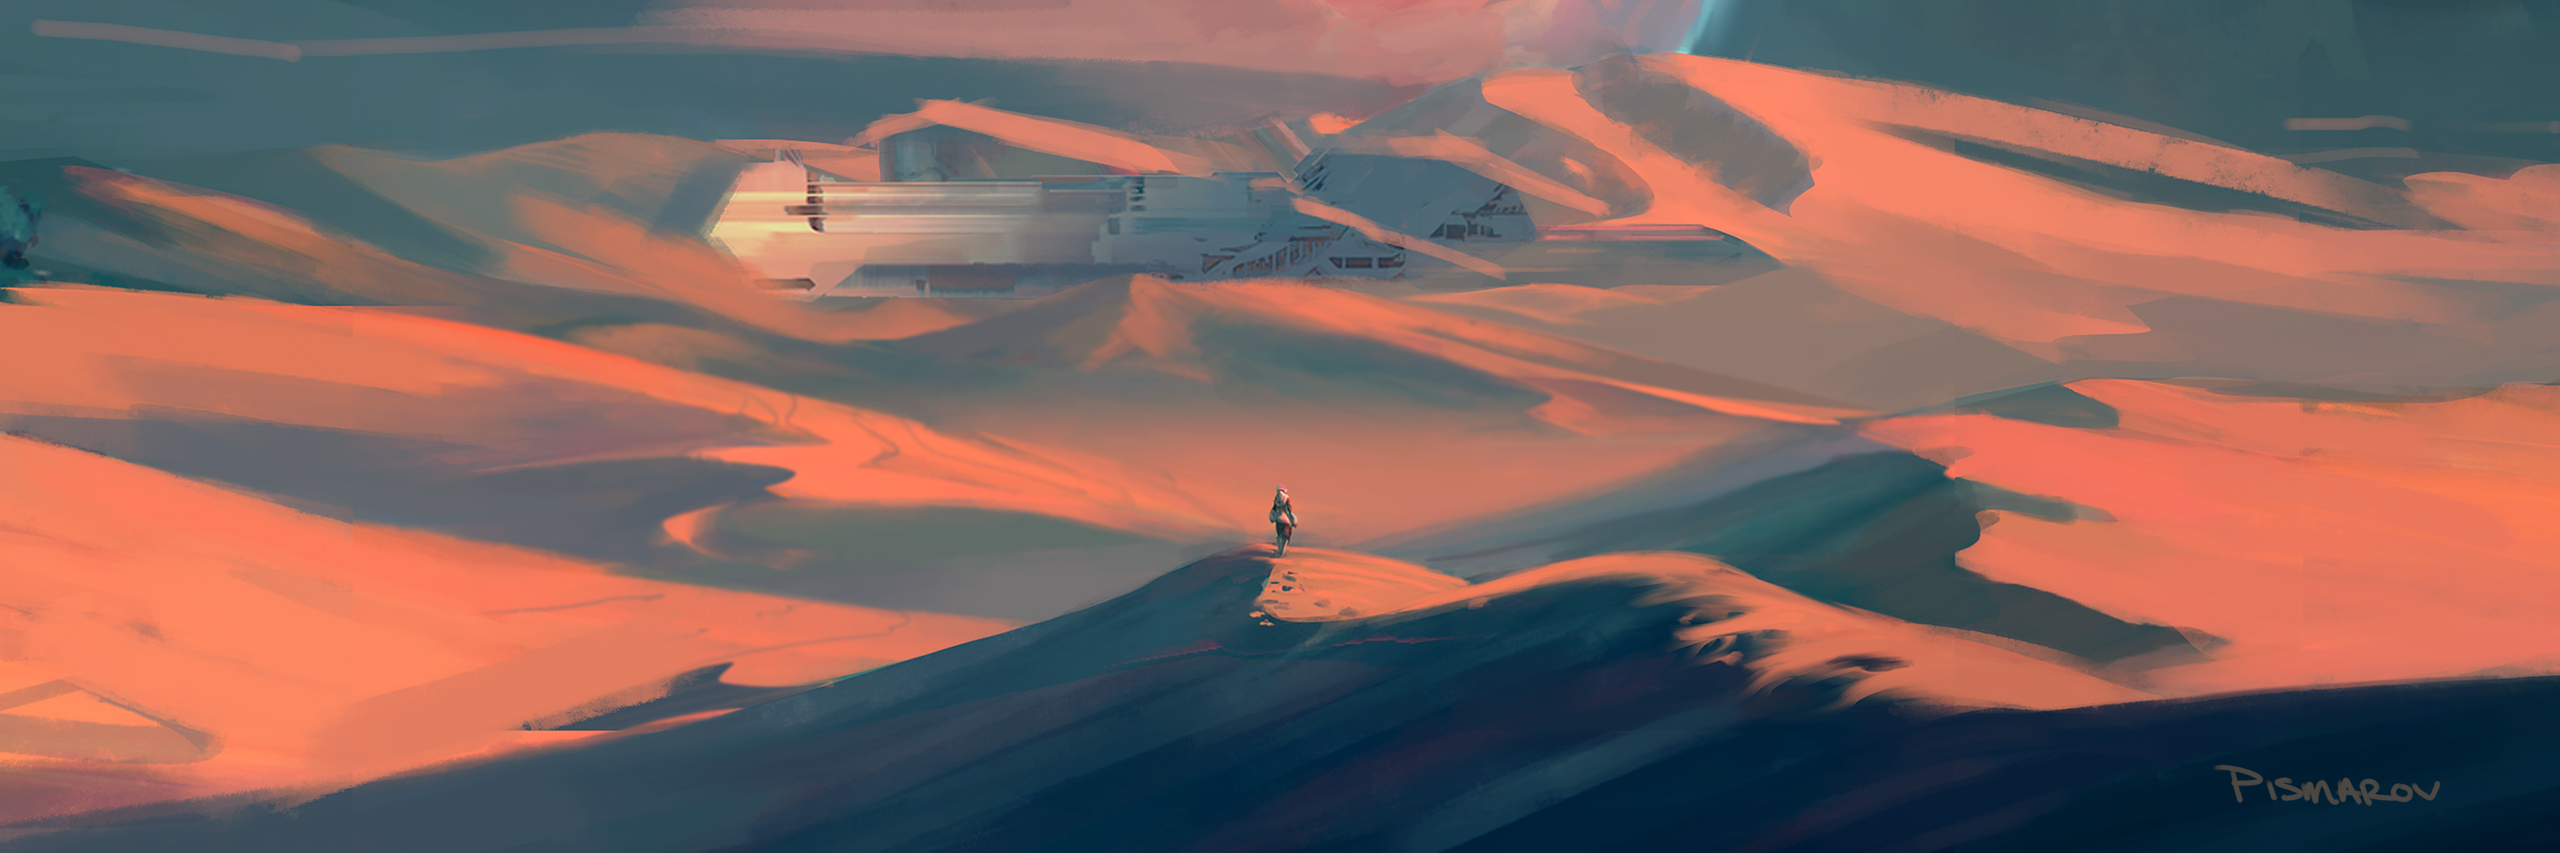 Desert Environment Color Concept Num. 2